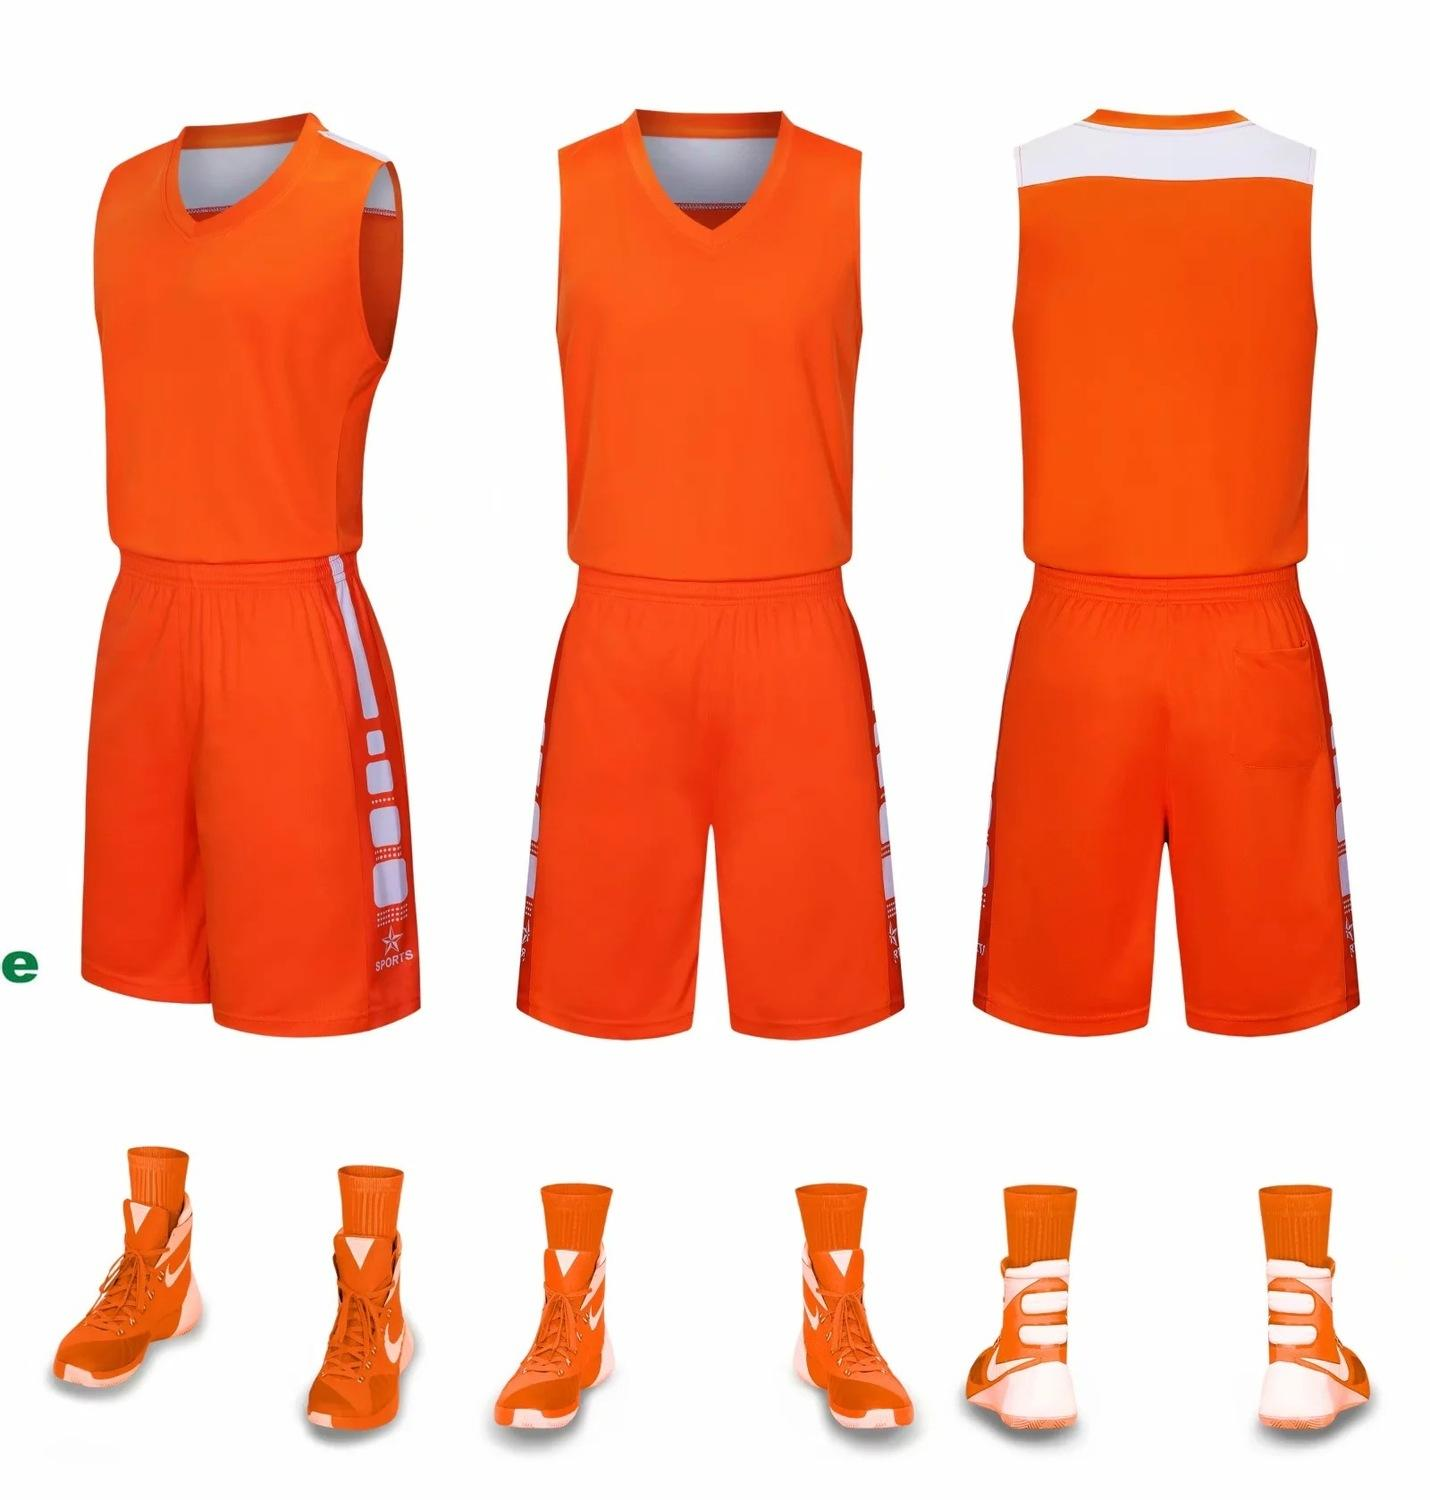 2019 New Blank Basketball jerseys printed logo Mens size S-XXL cheap price fast shipping good quality STARSPORT ORANGE SOG001AA12r